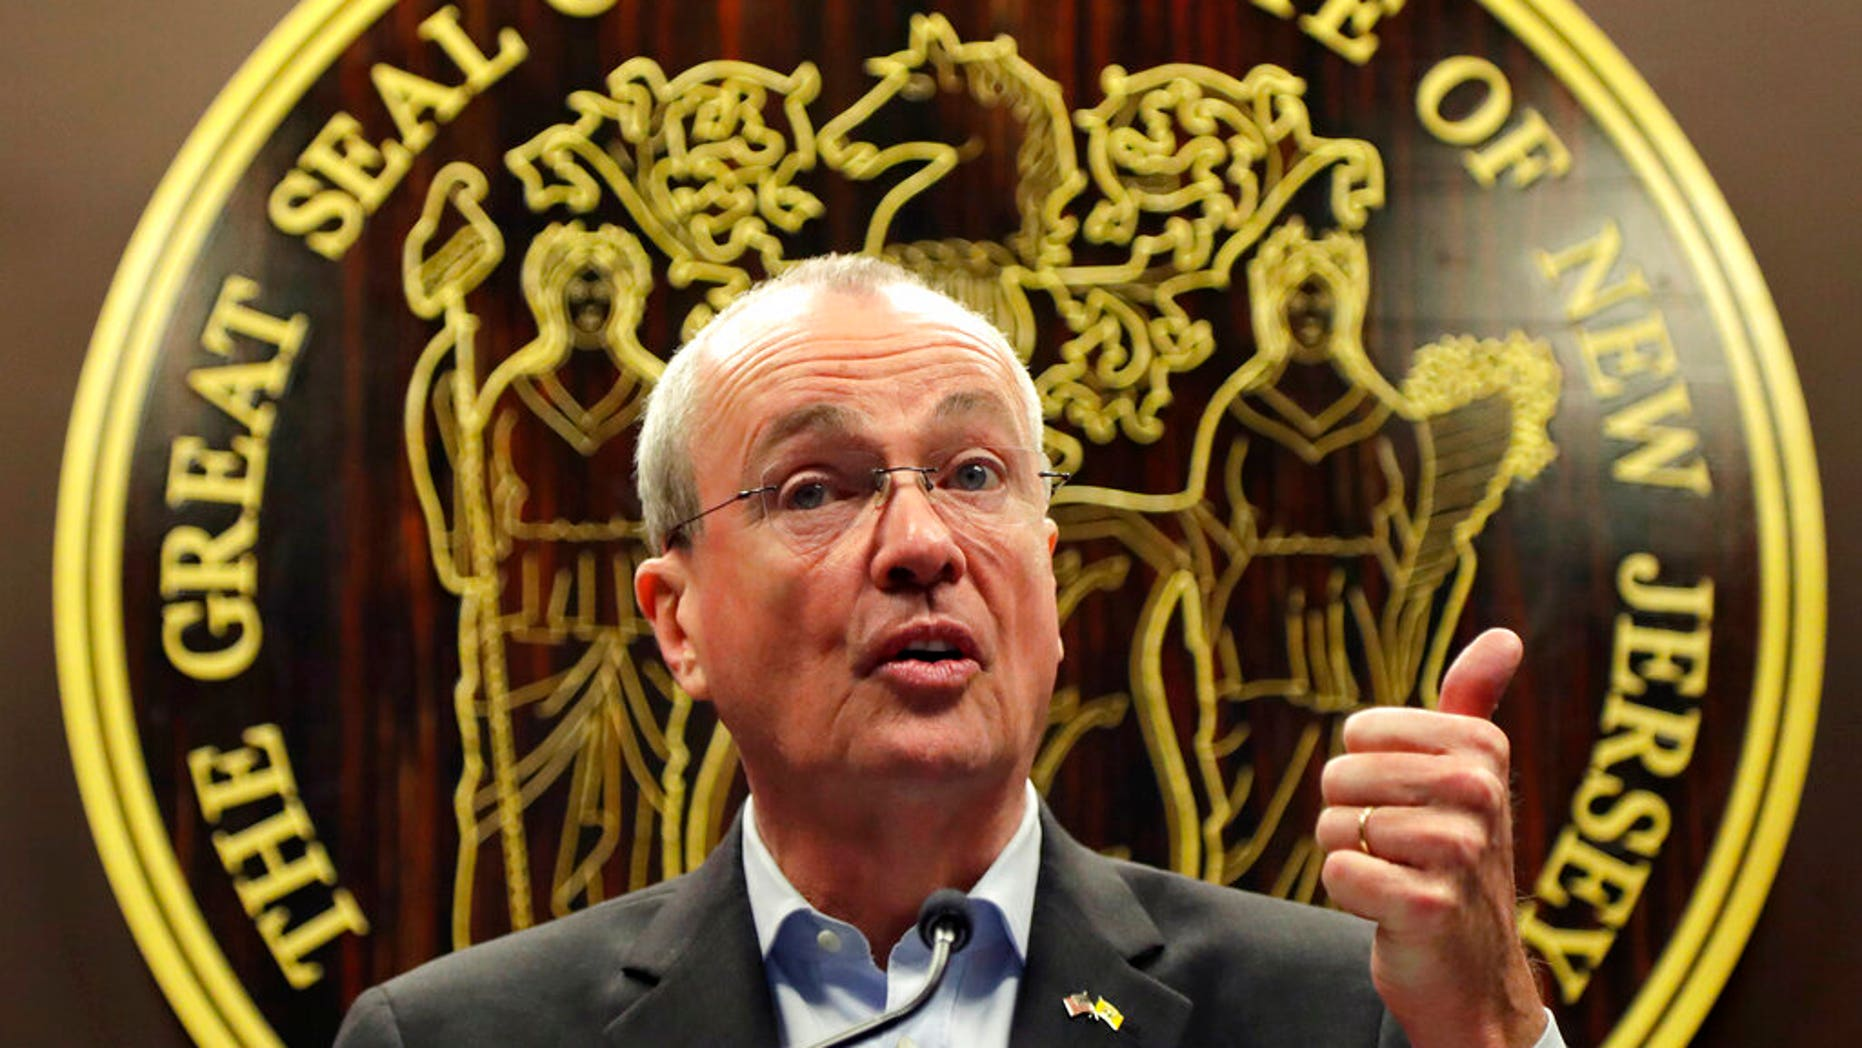 New Jersey Gov. Phil Murphy said Monday he will legalize assisted suicide by signing the 'Right to Die' bill that's already been passed by the state legislature.